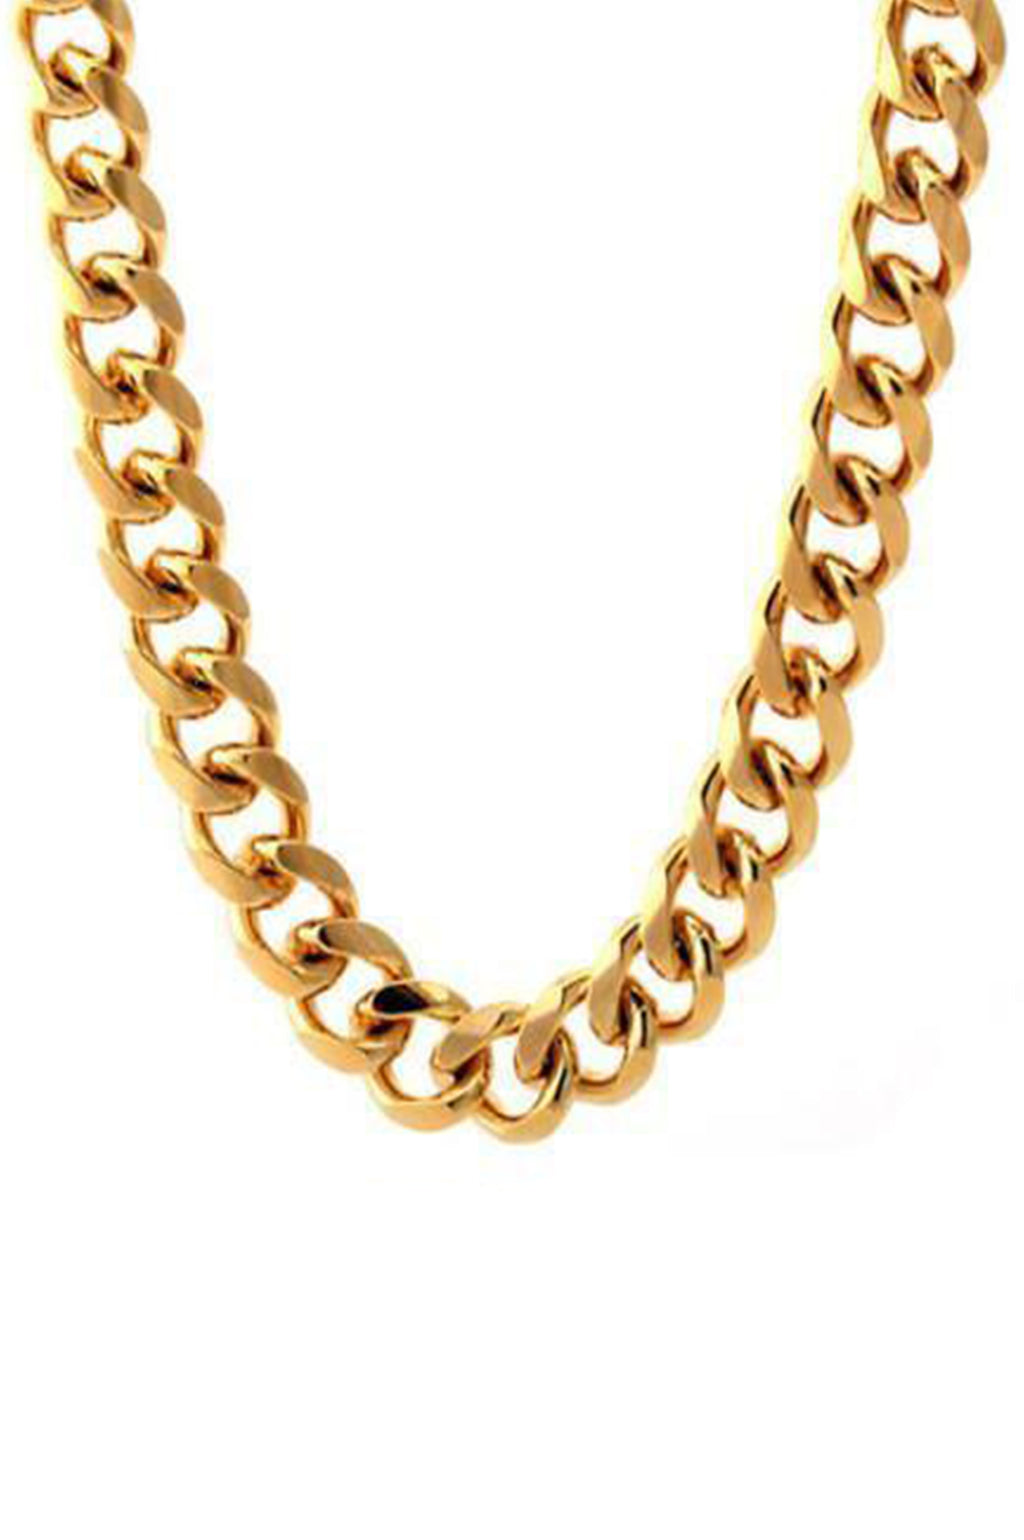 Aao Fashion Acc Men Necklace S/S 14K Gold Miami Cuban Curb